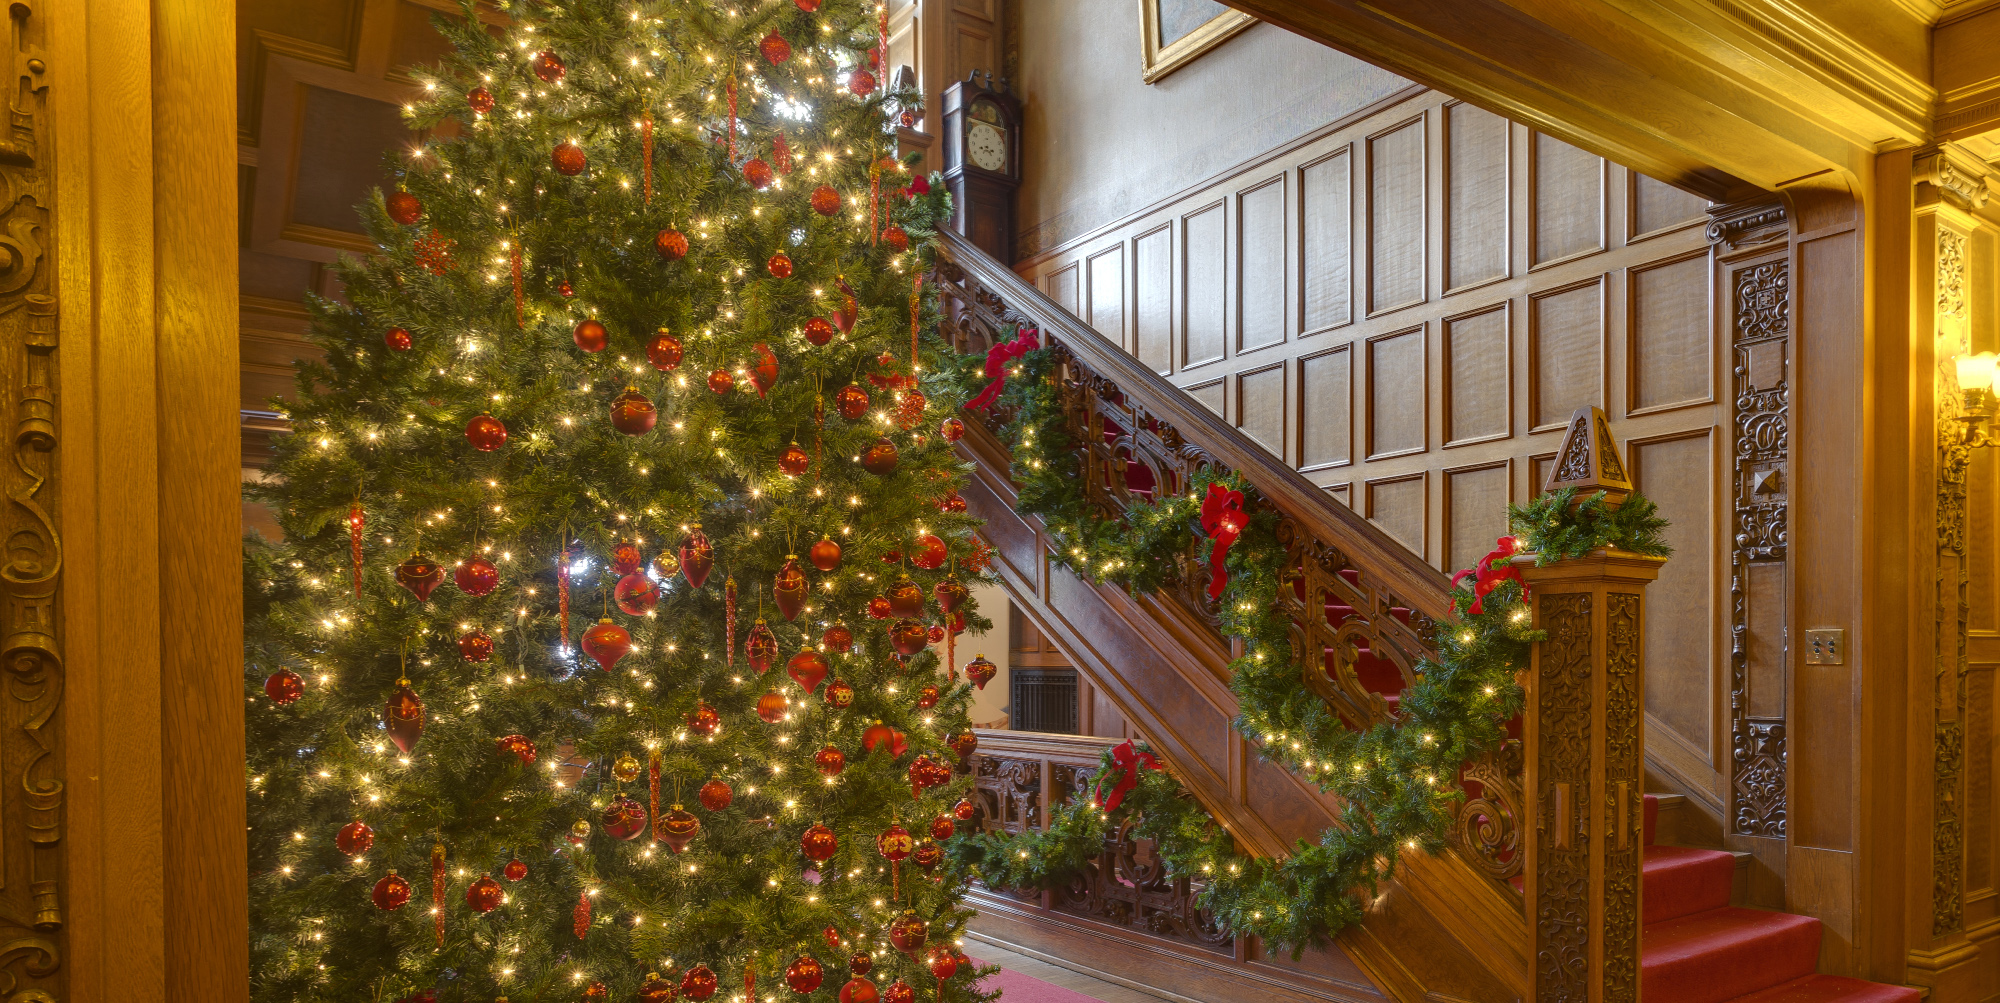 Full Mansion Tour Christmas - beach house rentals for weddings